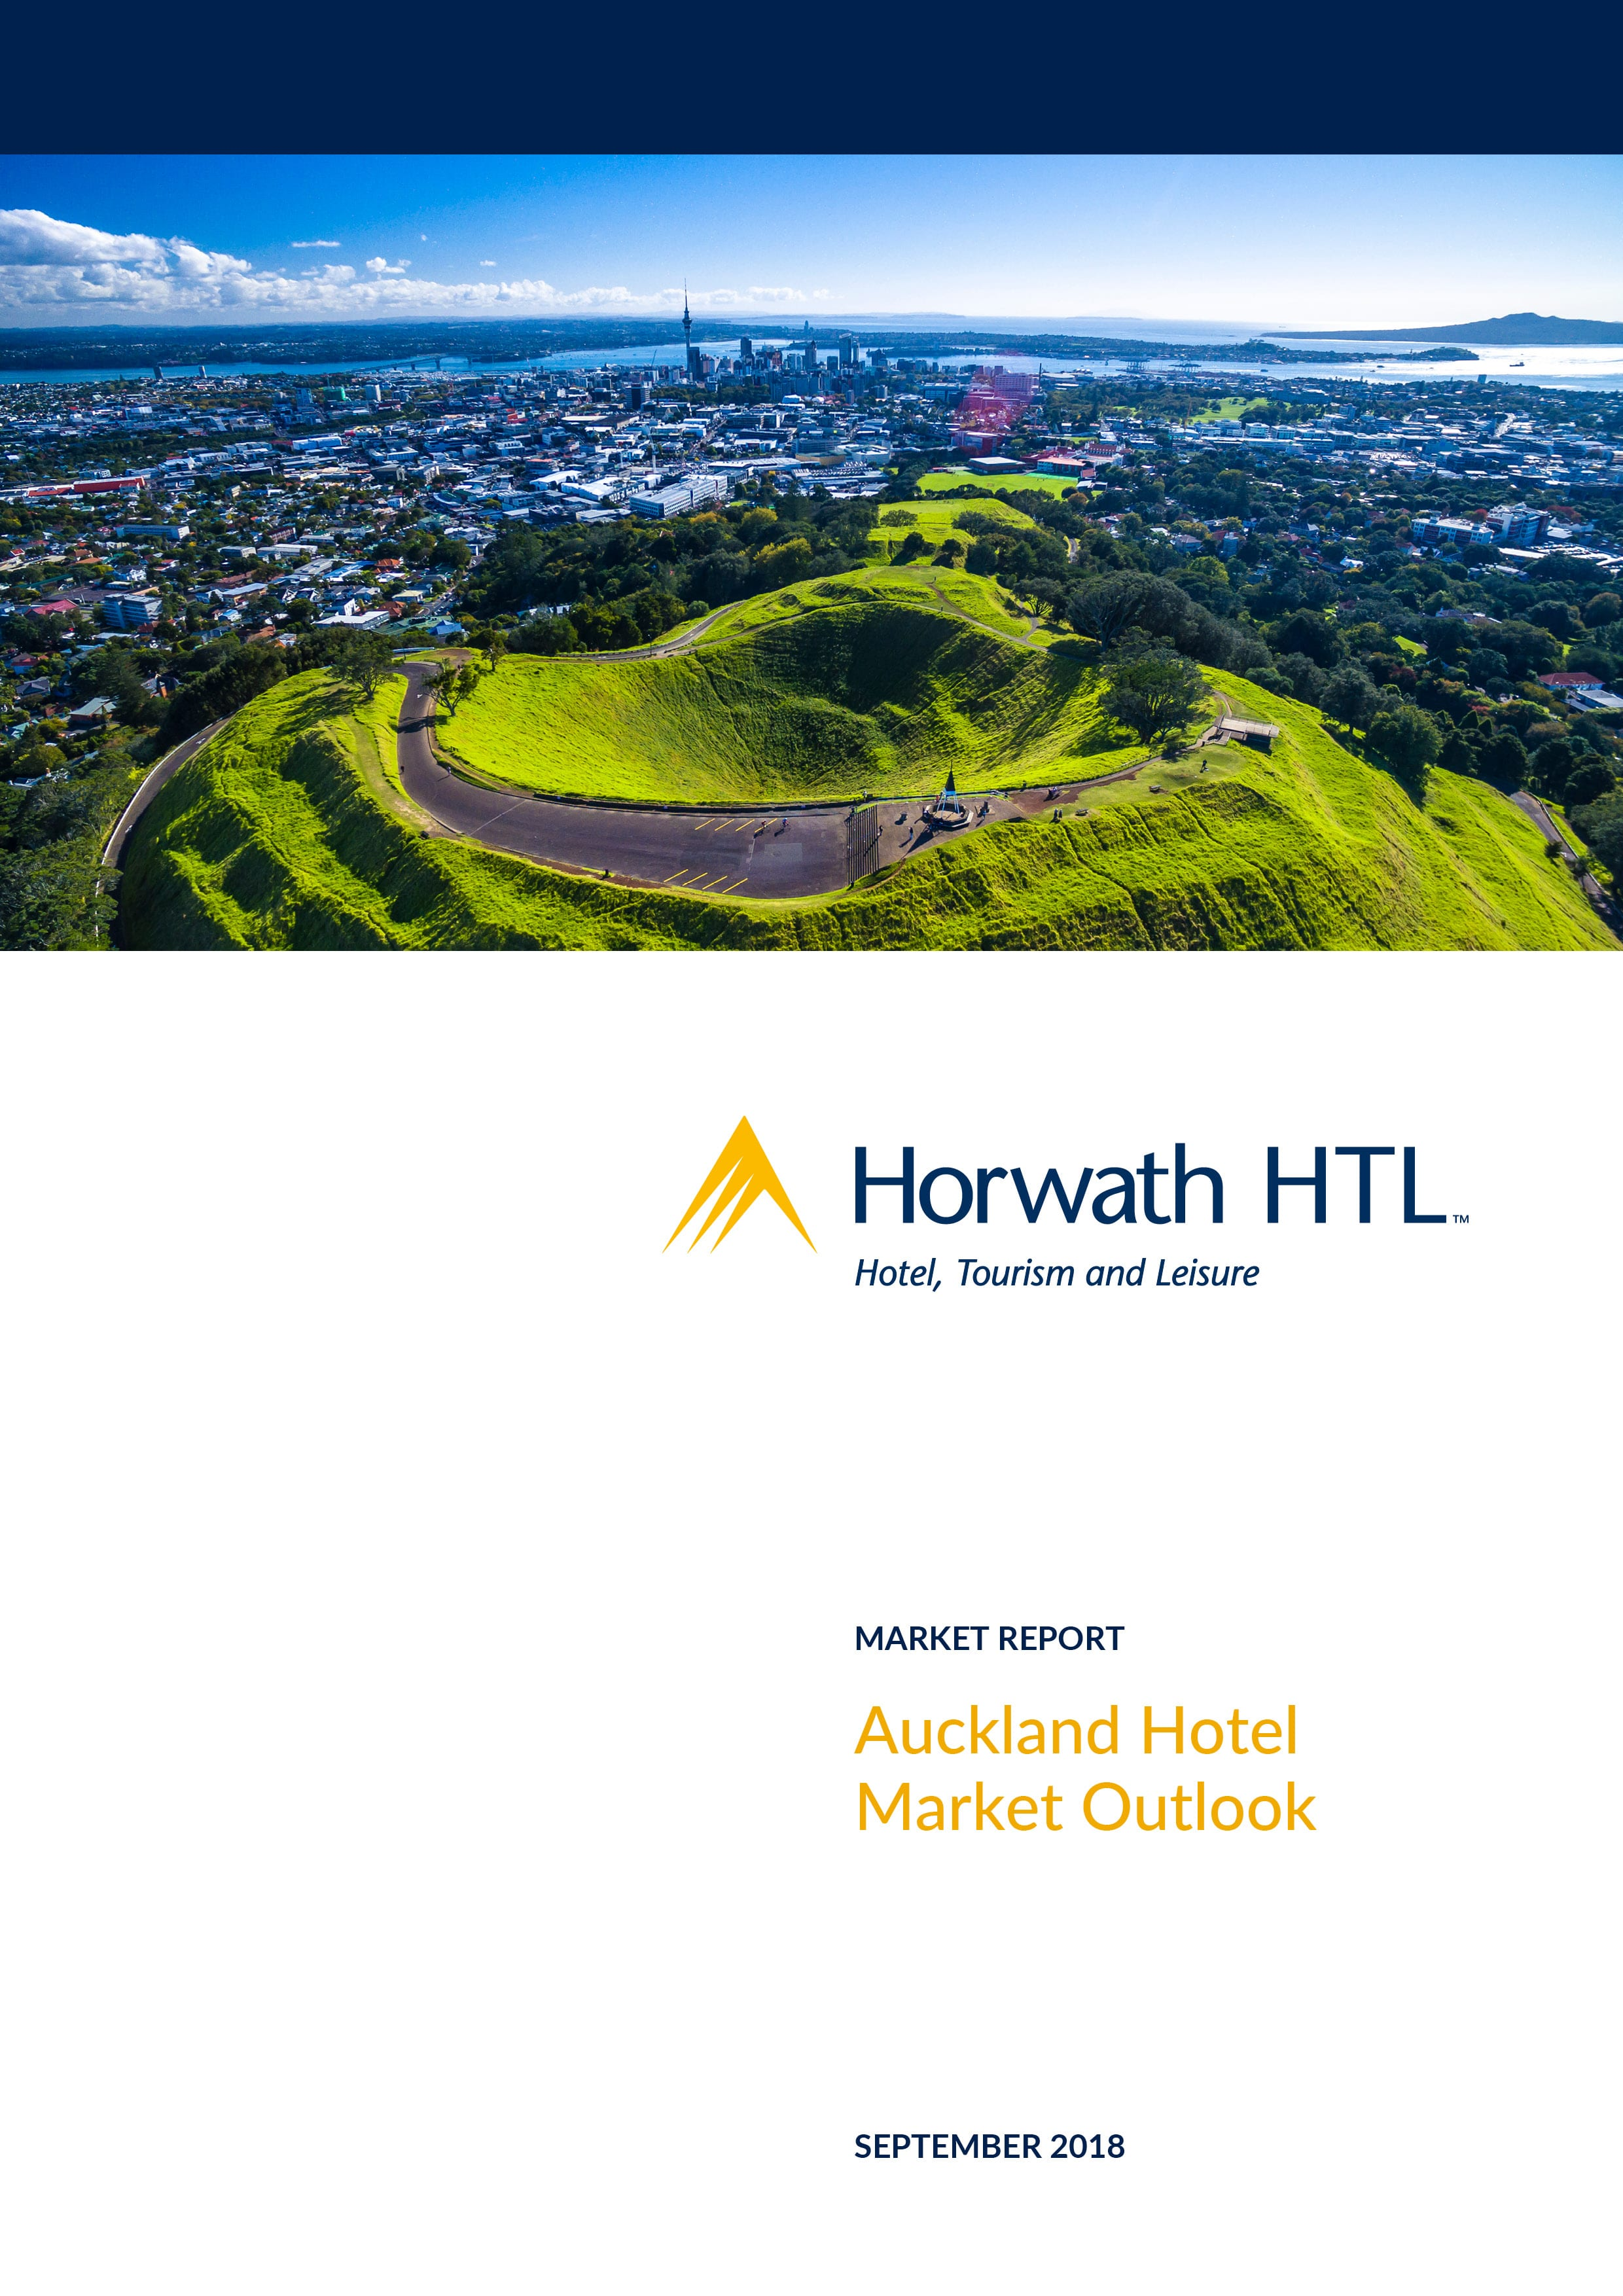 MR Auckland Hotel Market Outlook